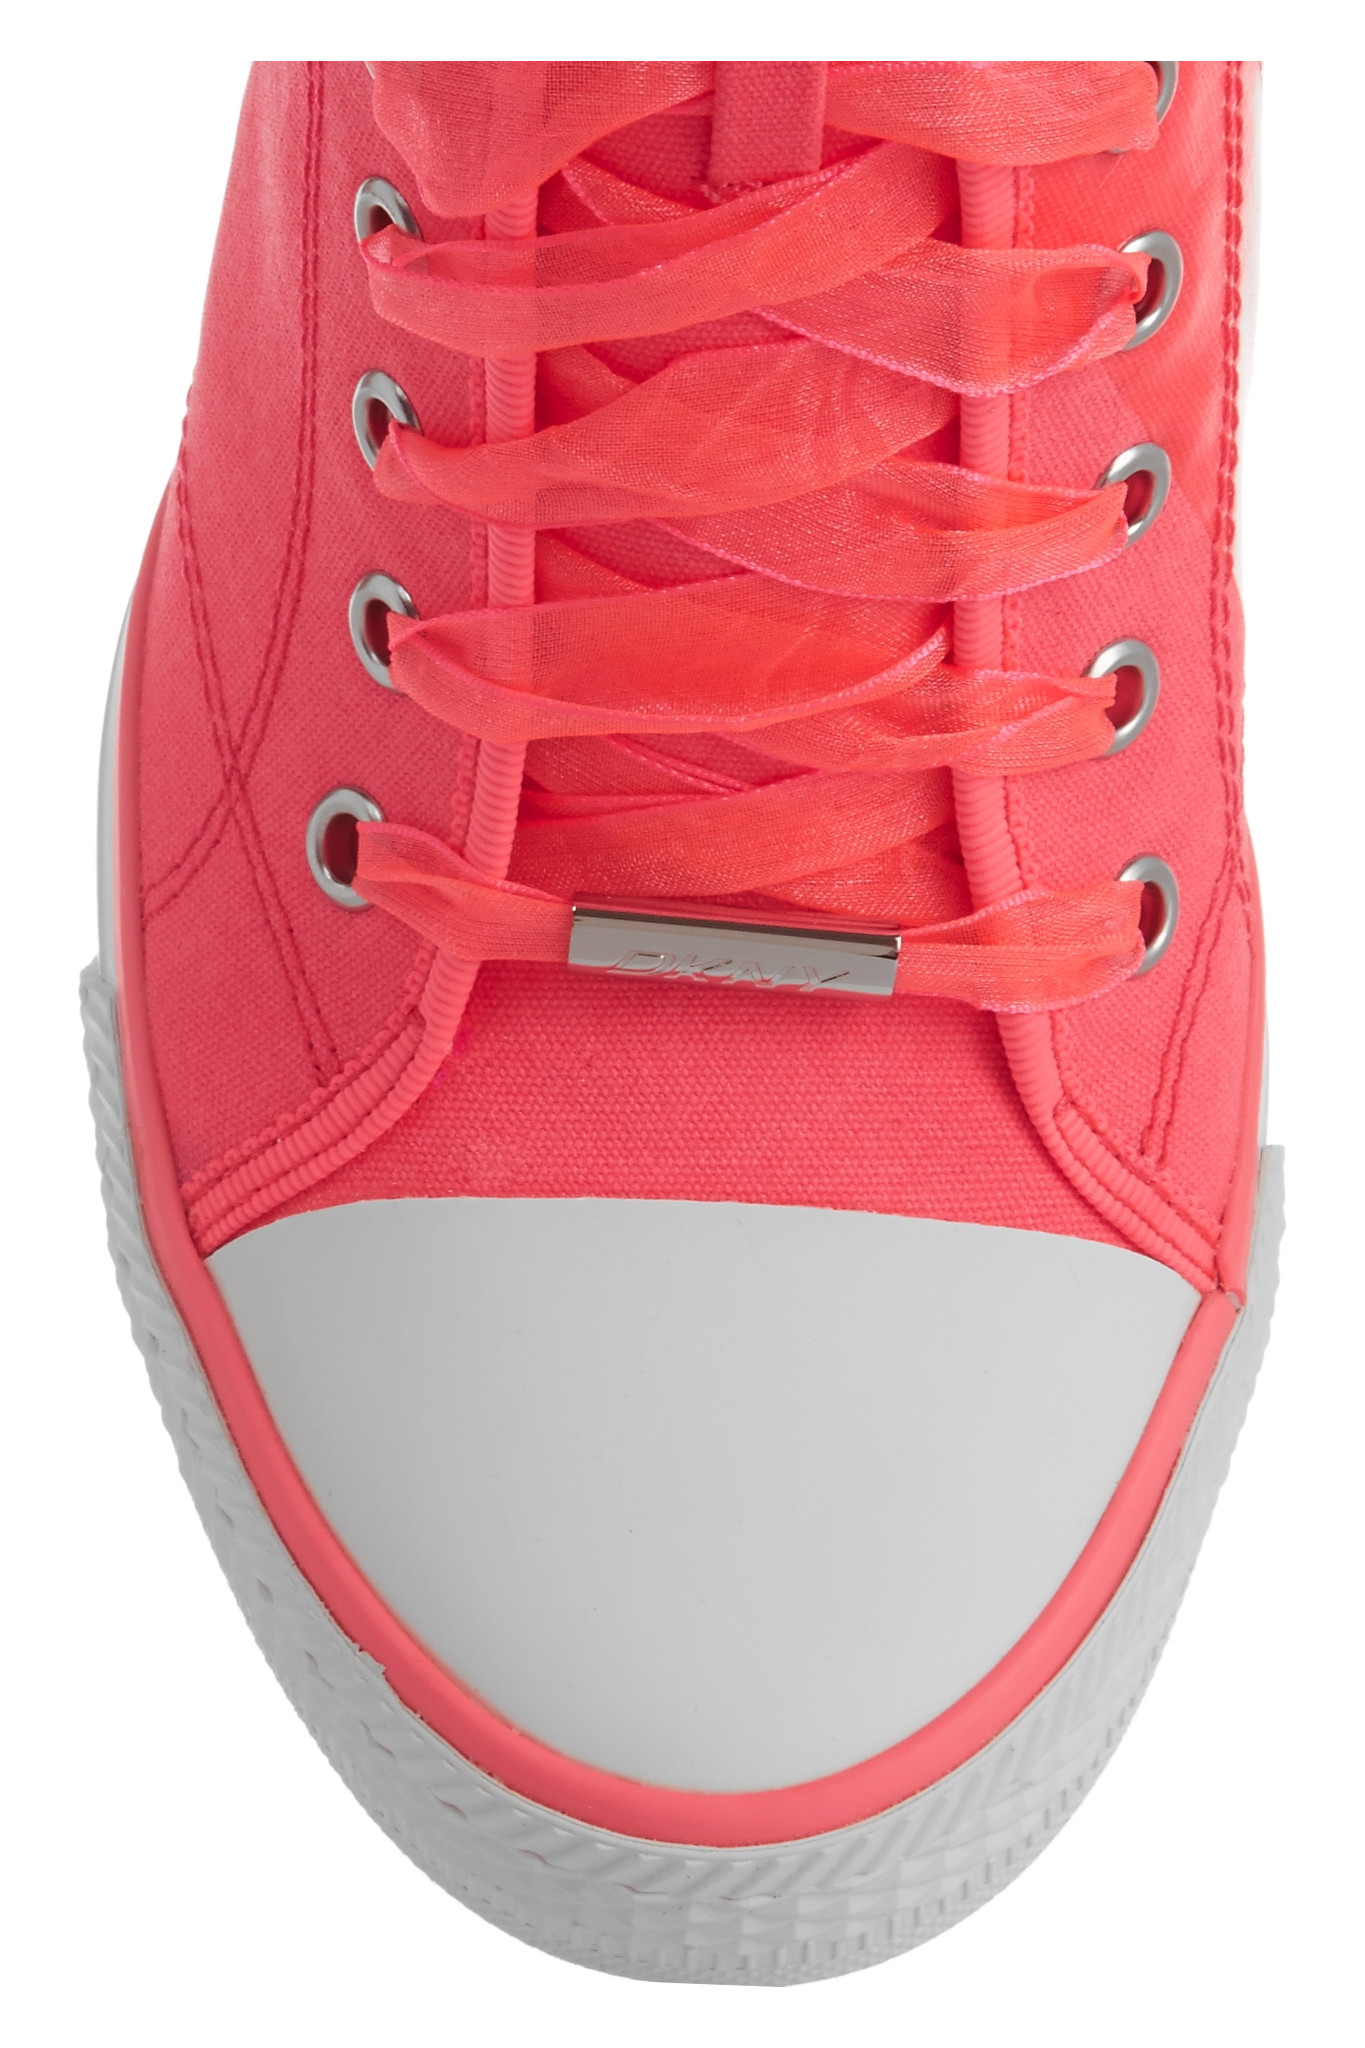 DKNY Neon Canvas Wedge Sneakers in Pink